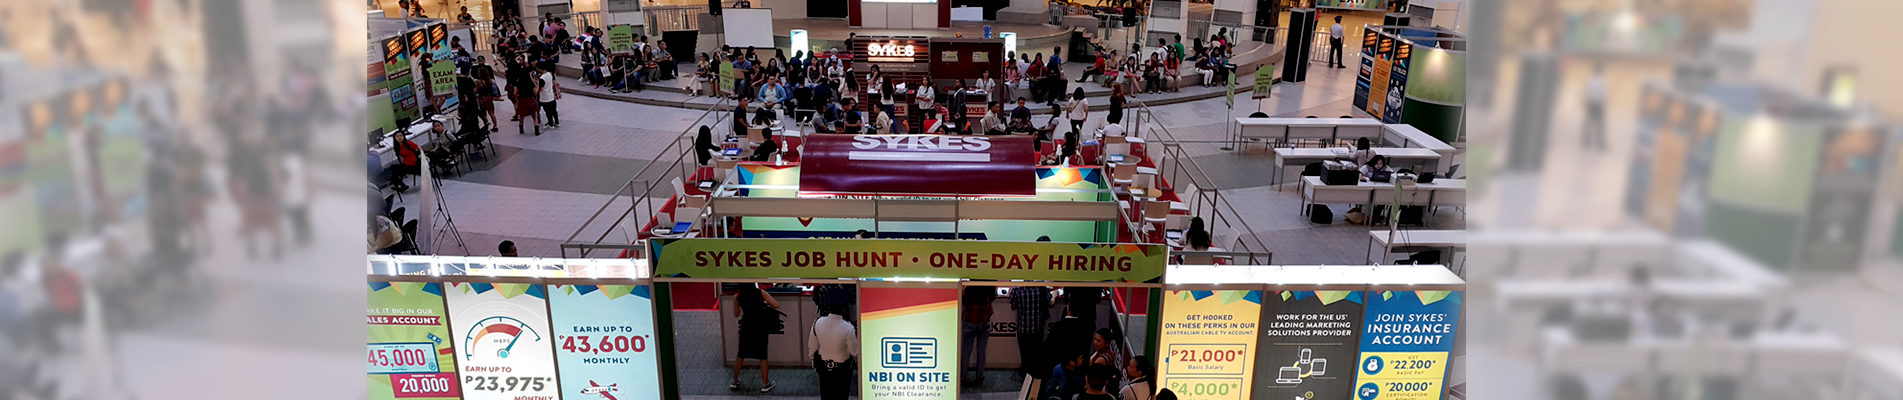 SYKES' 2-day Job Hunt in Trinoma Opened Doors for More Opportunities